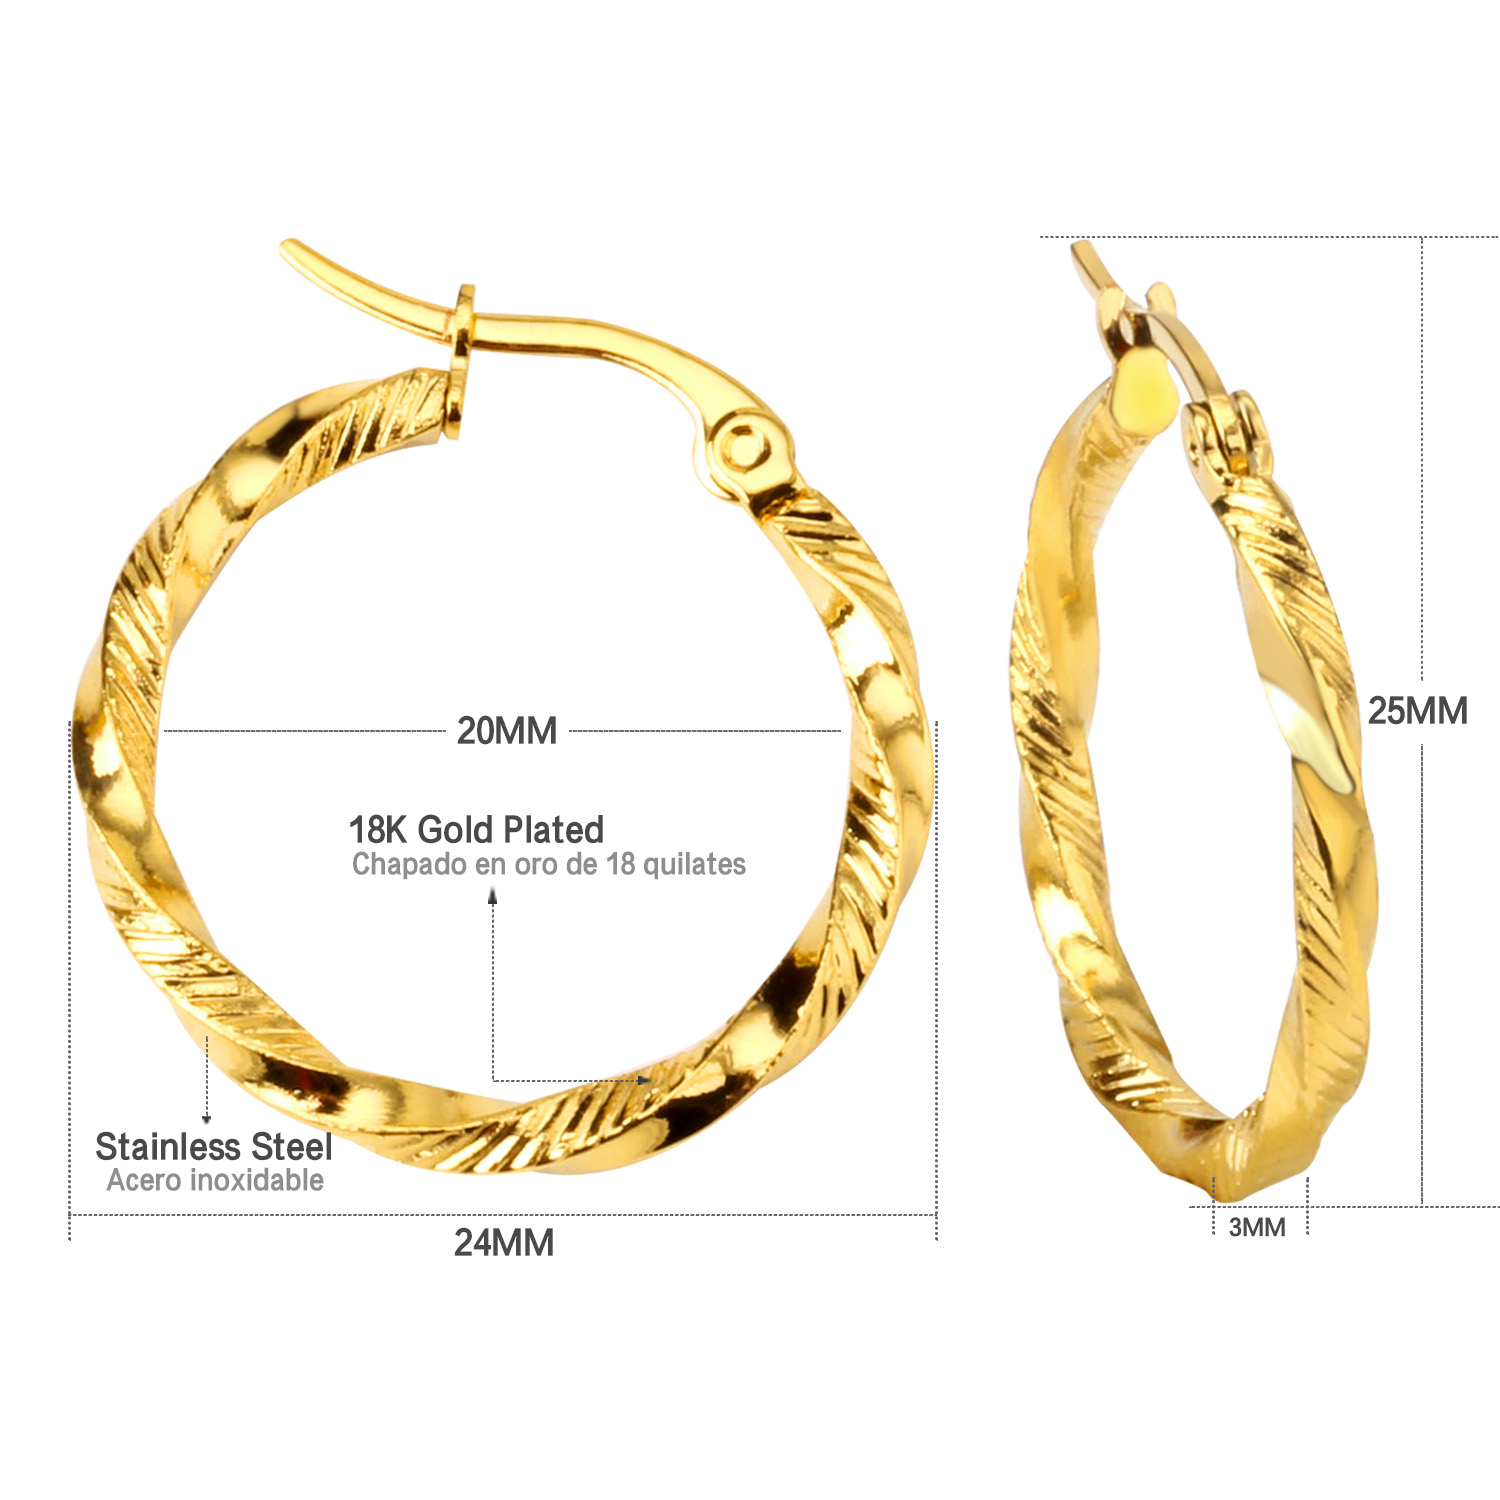 jewellery earring march hoop gold earrings d rose yellow in taula